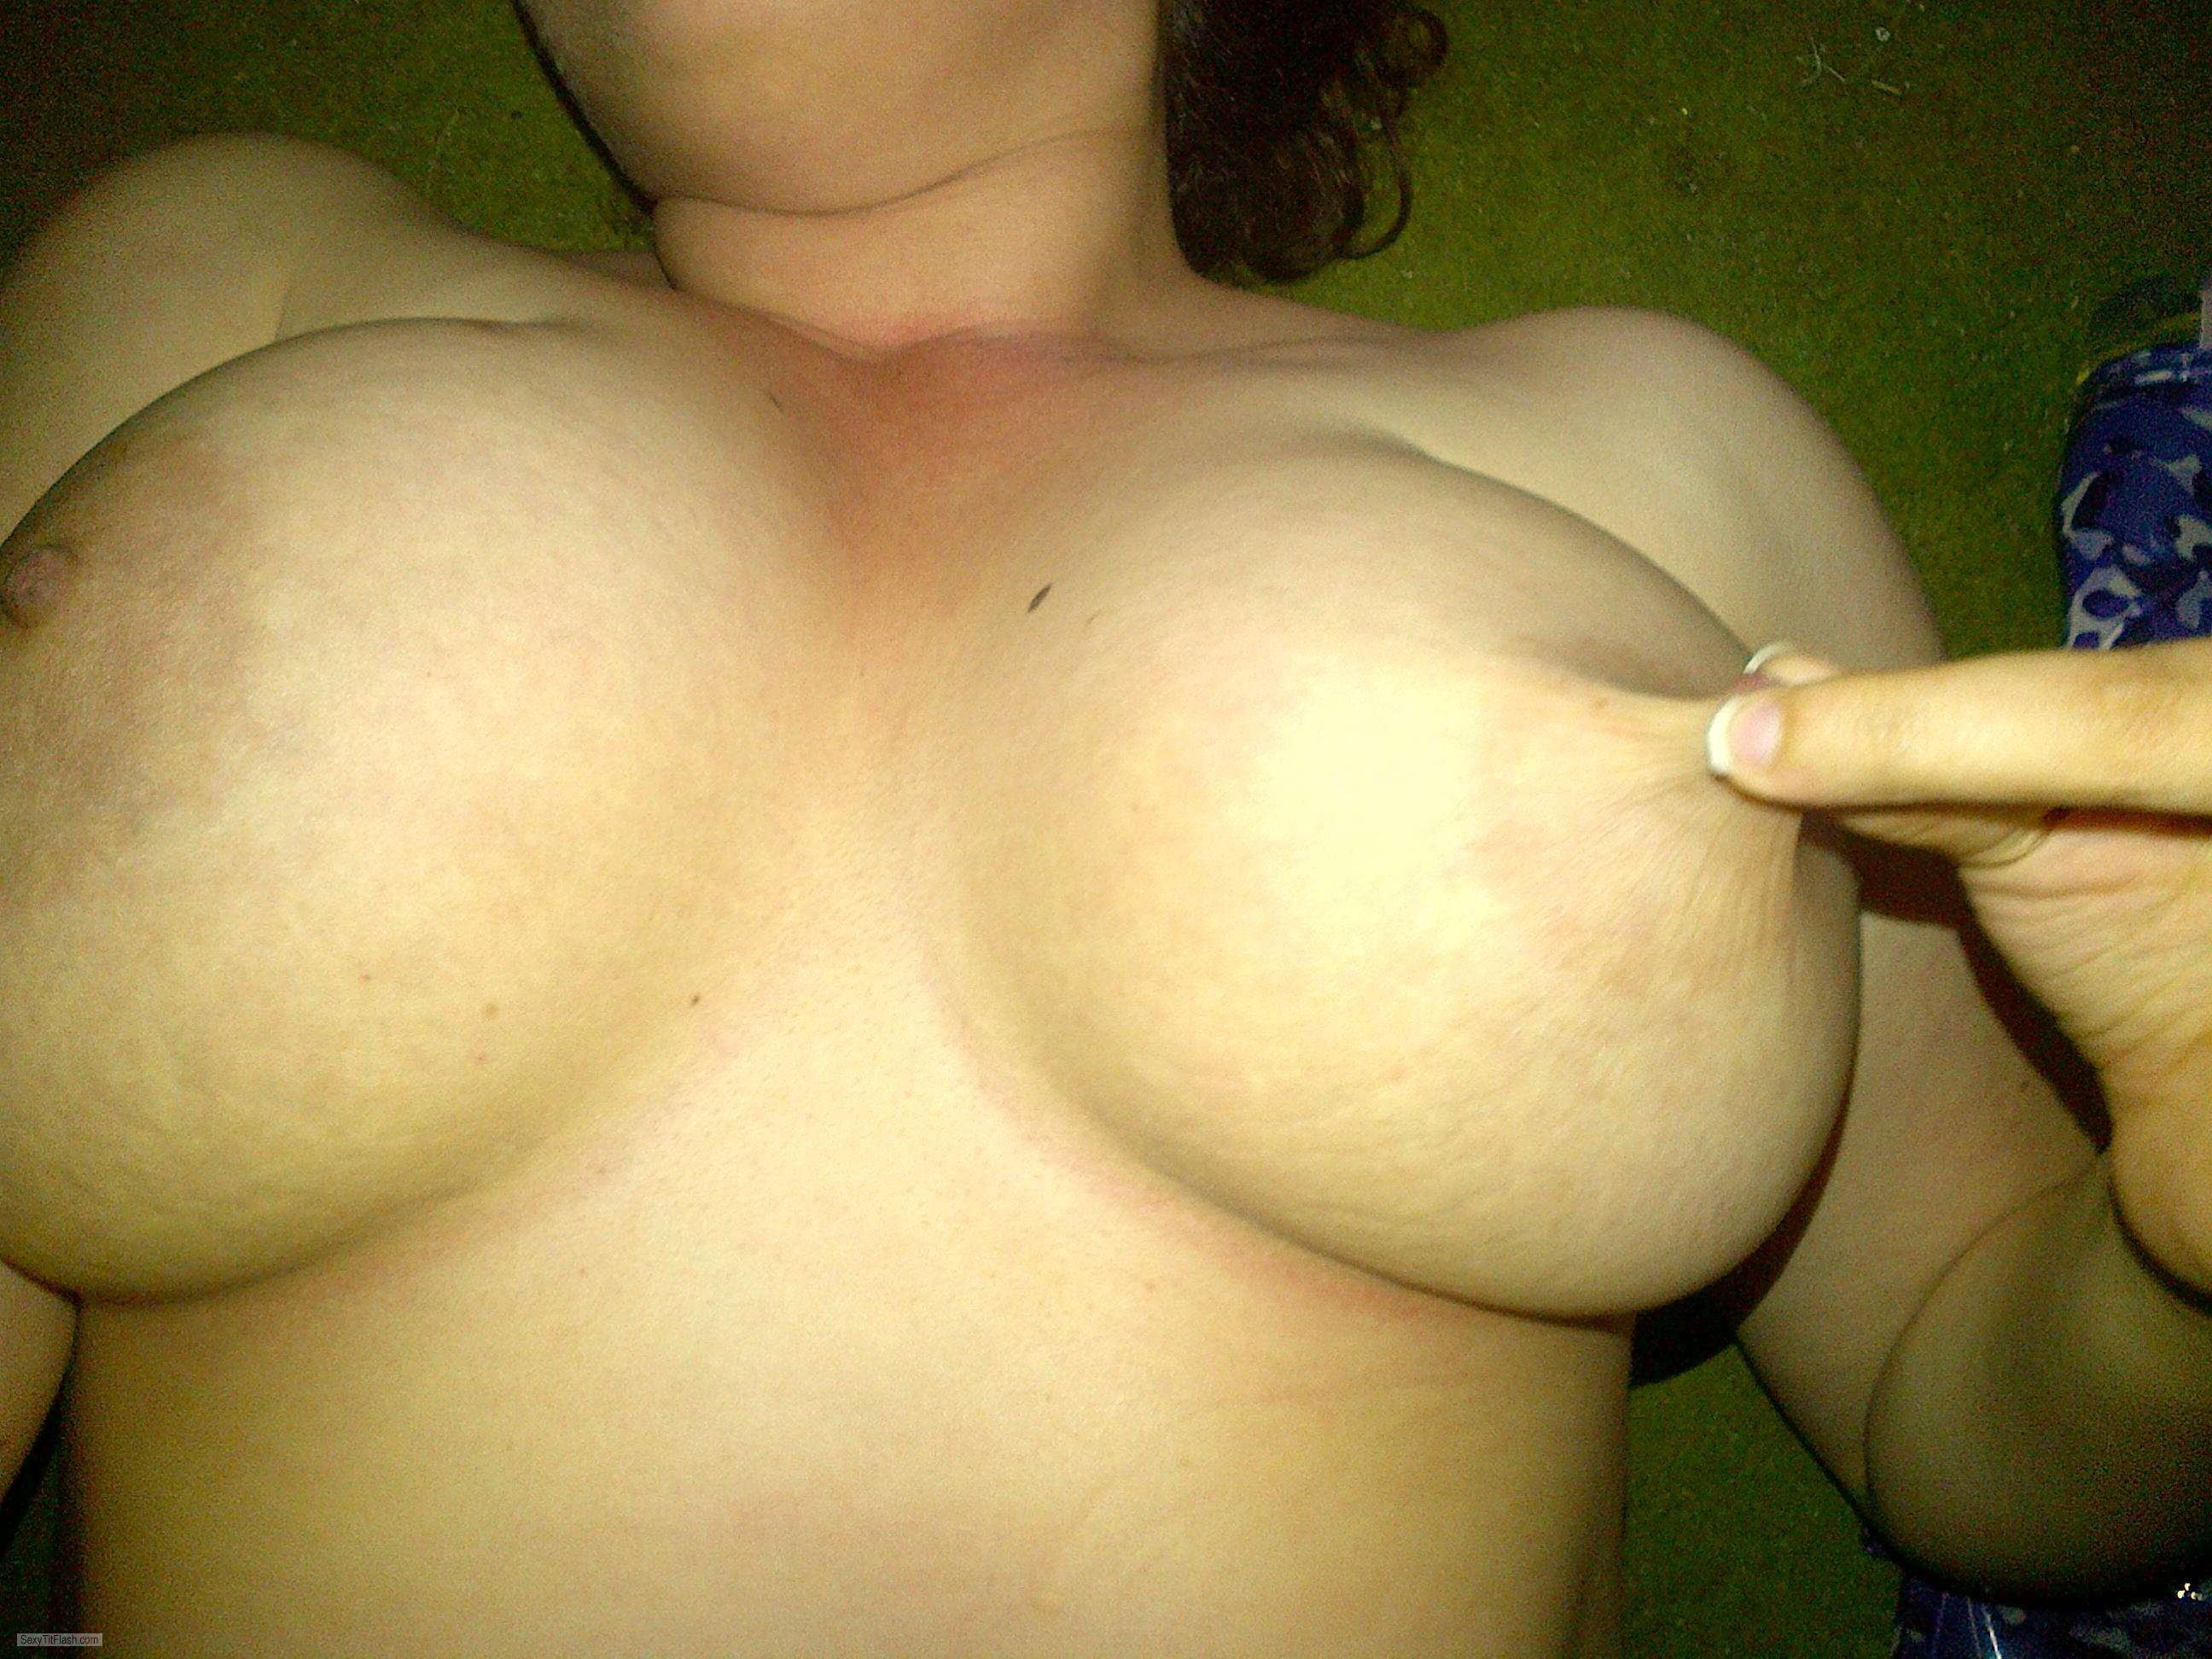 My Big Tits Selfie by Big Boobs